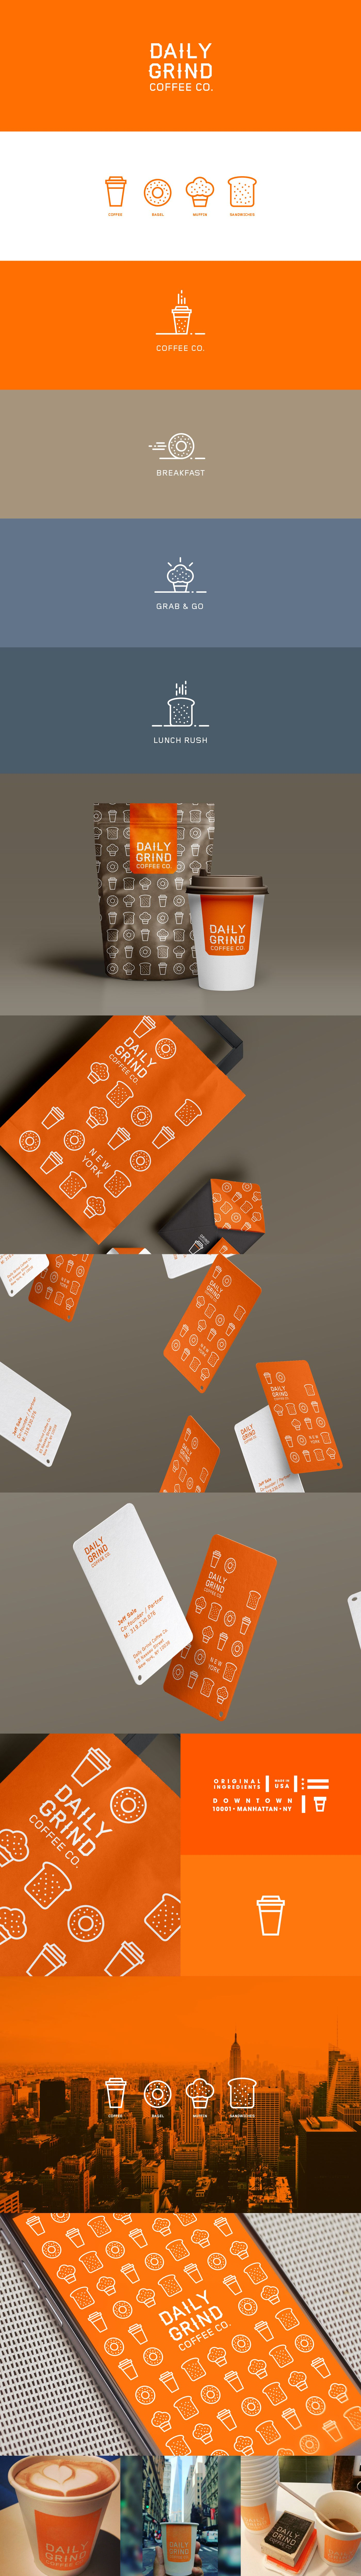 Daily grind coffee co on behance corporate design